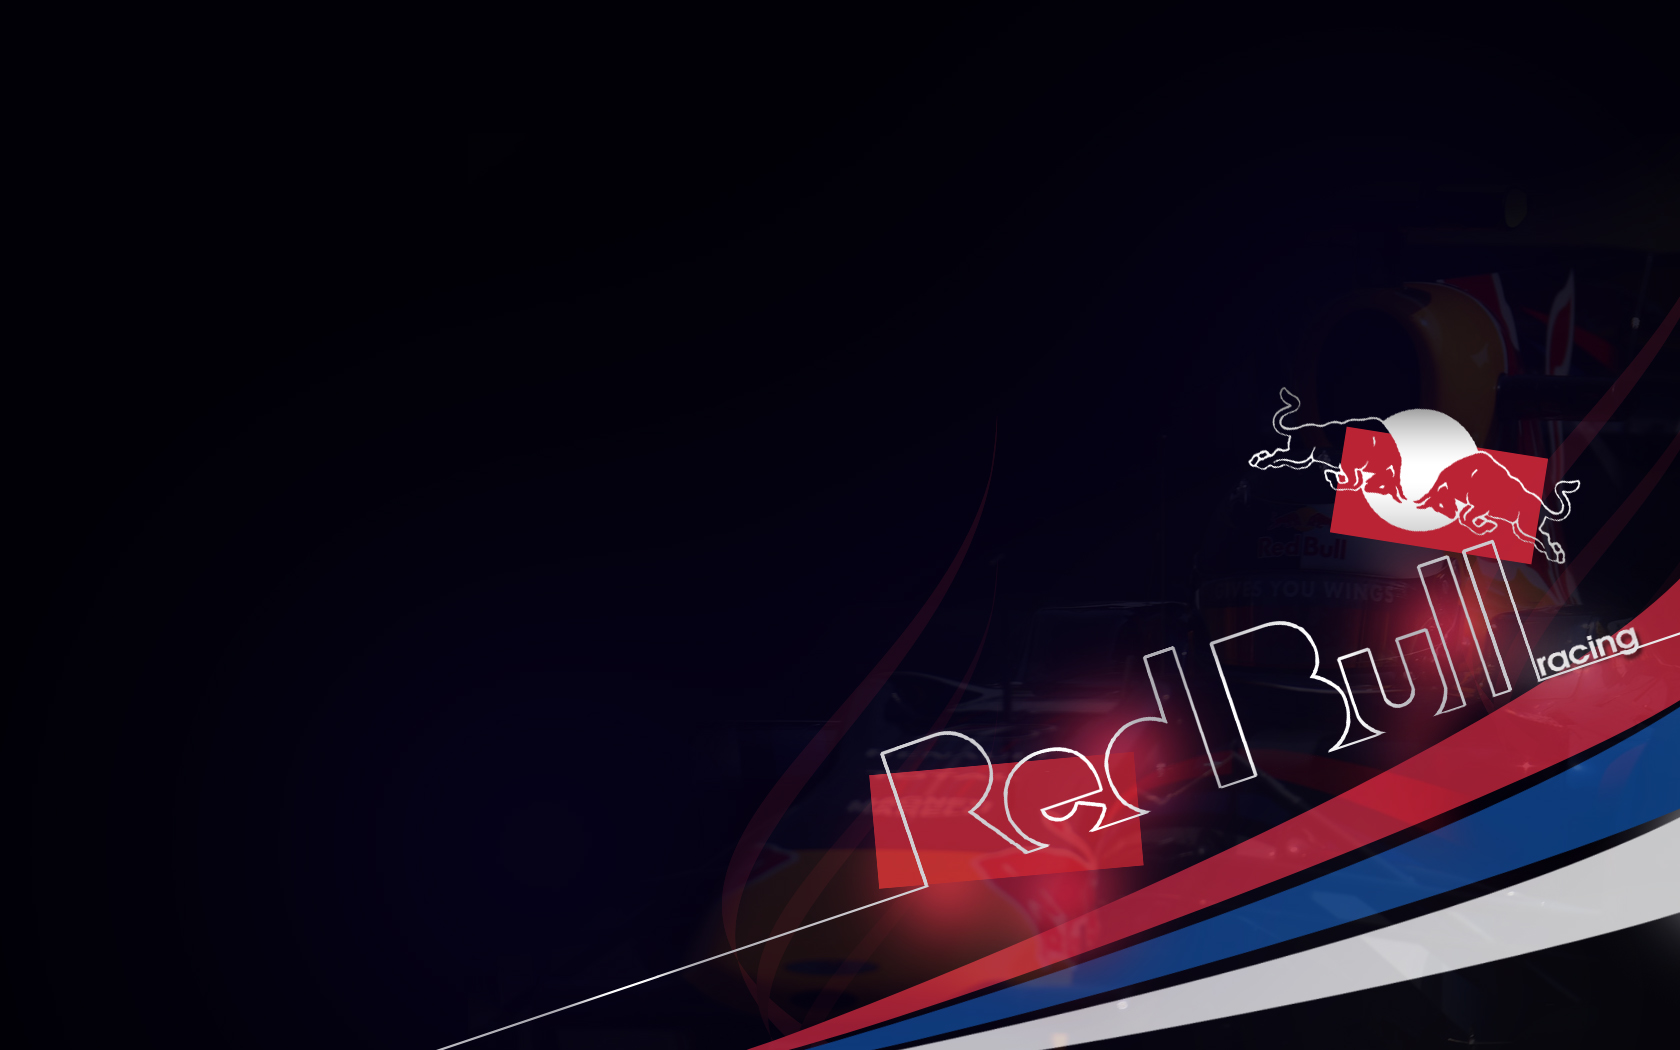 Cool Red Bull Racing Wallpaper 17892 1680x1050 px HDWallSourcecom